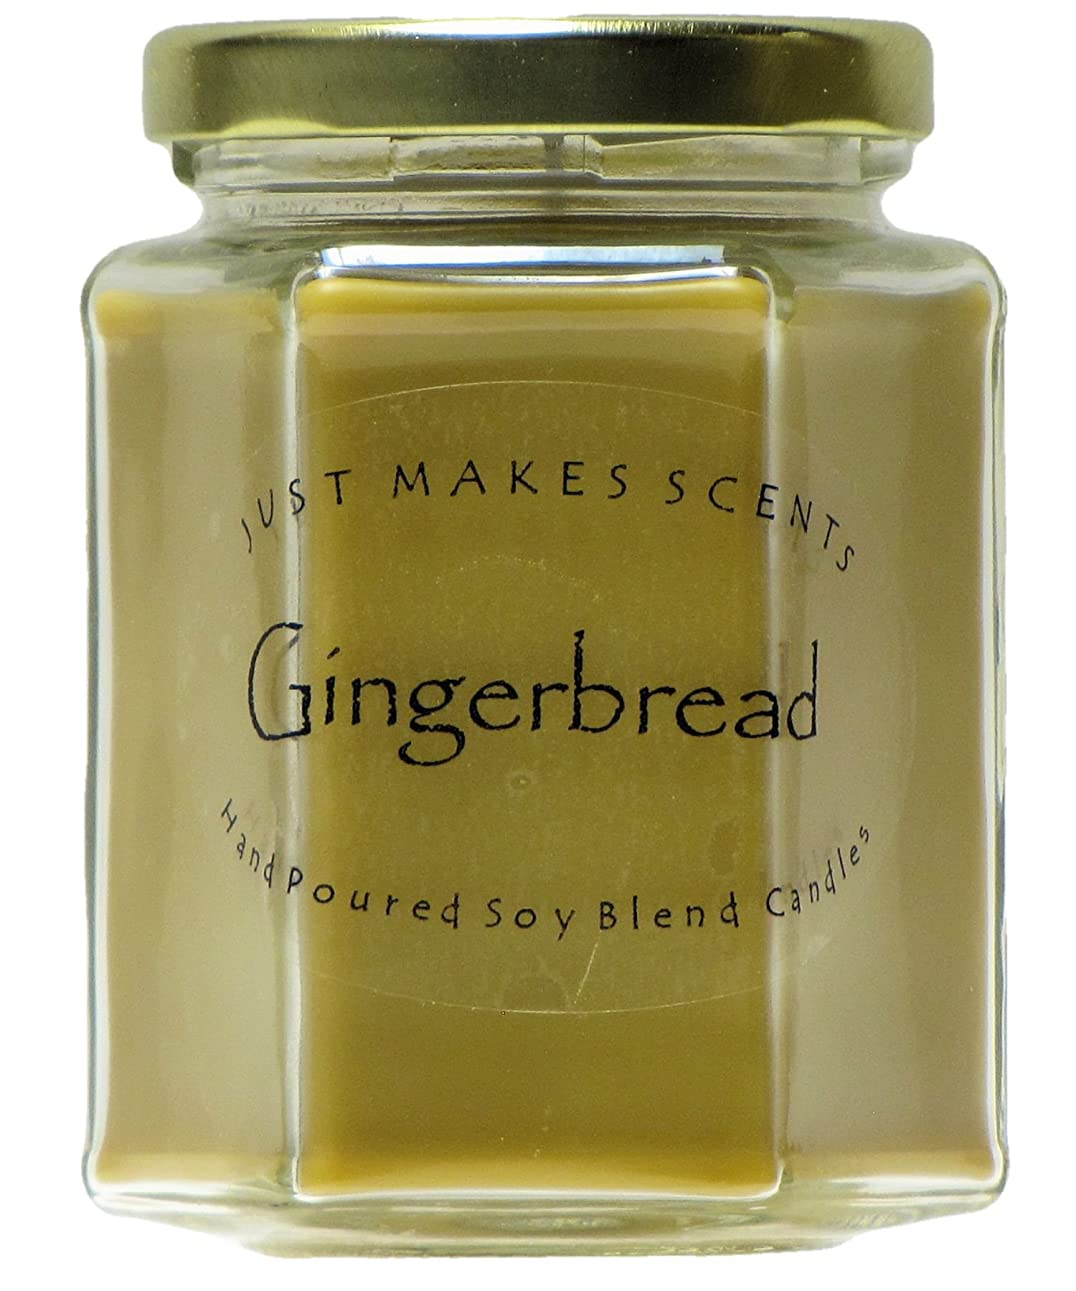 導入する遺伝子肉腫Gingerbread香りつきBlended Soy Candle by Just Makes Scents